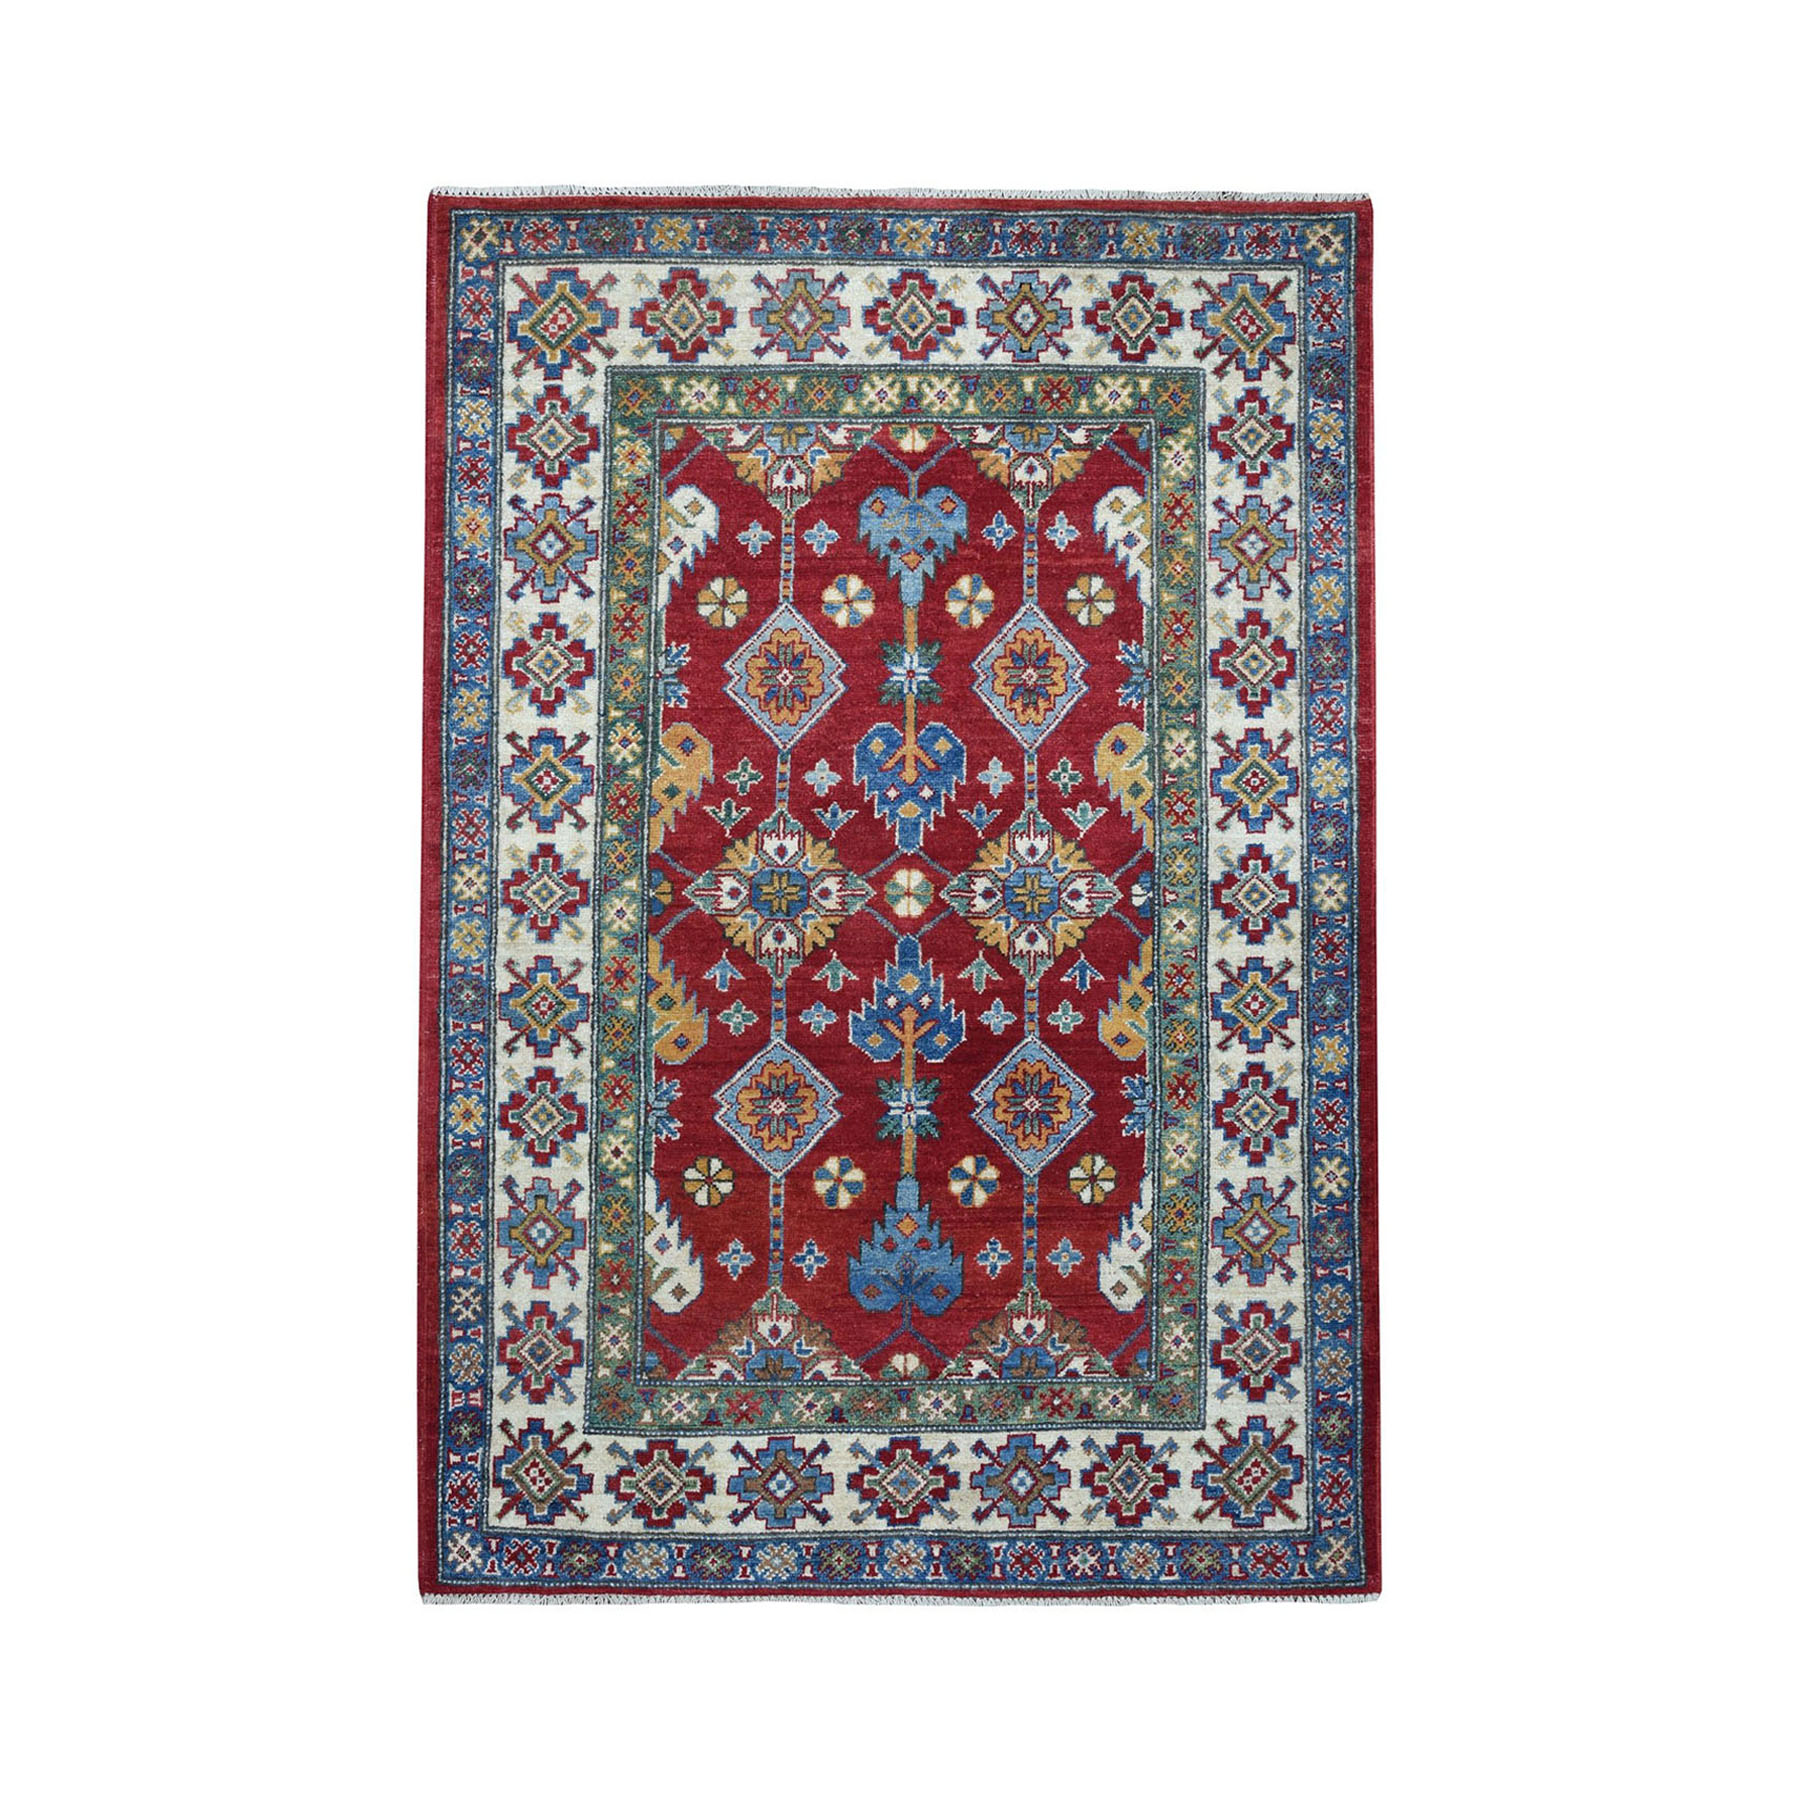 4'X6' Red Geometric Design Kazak Pure Wool Hand-Knotted Oriental Rug moaeaac0